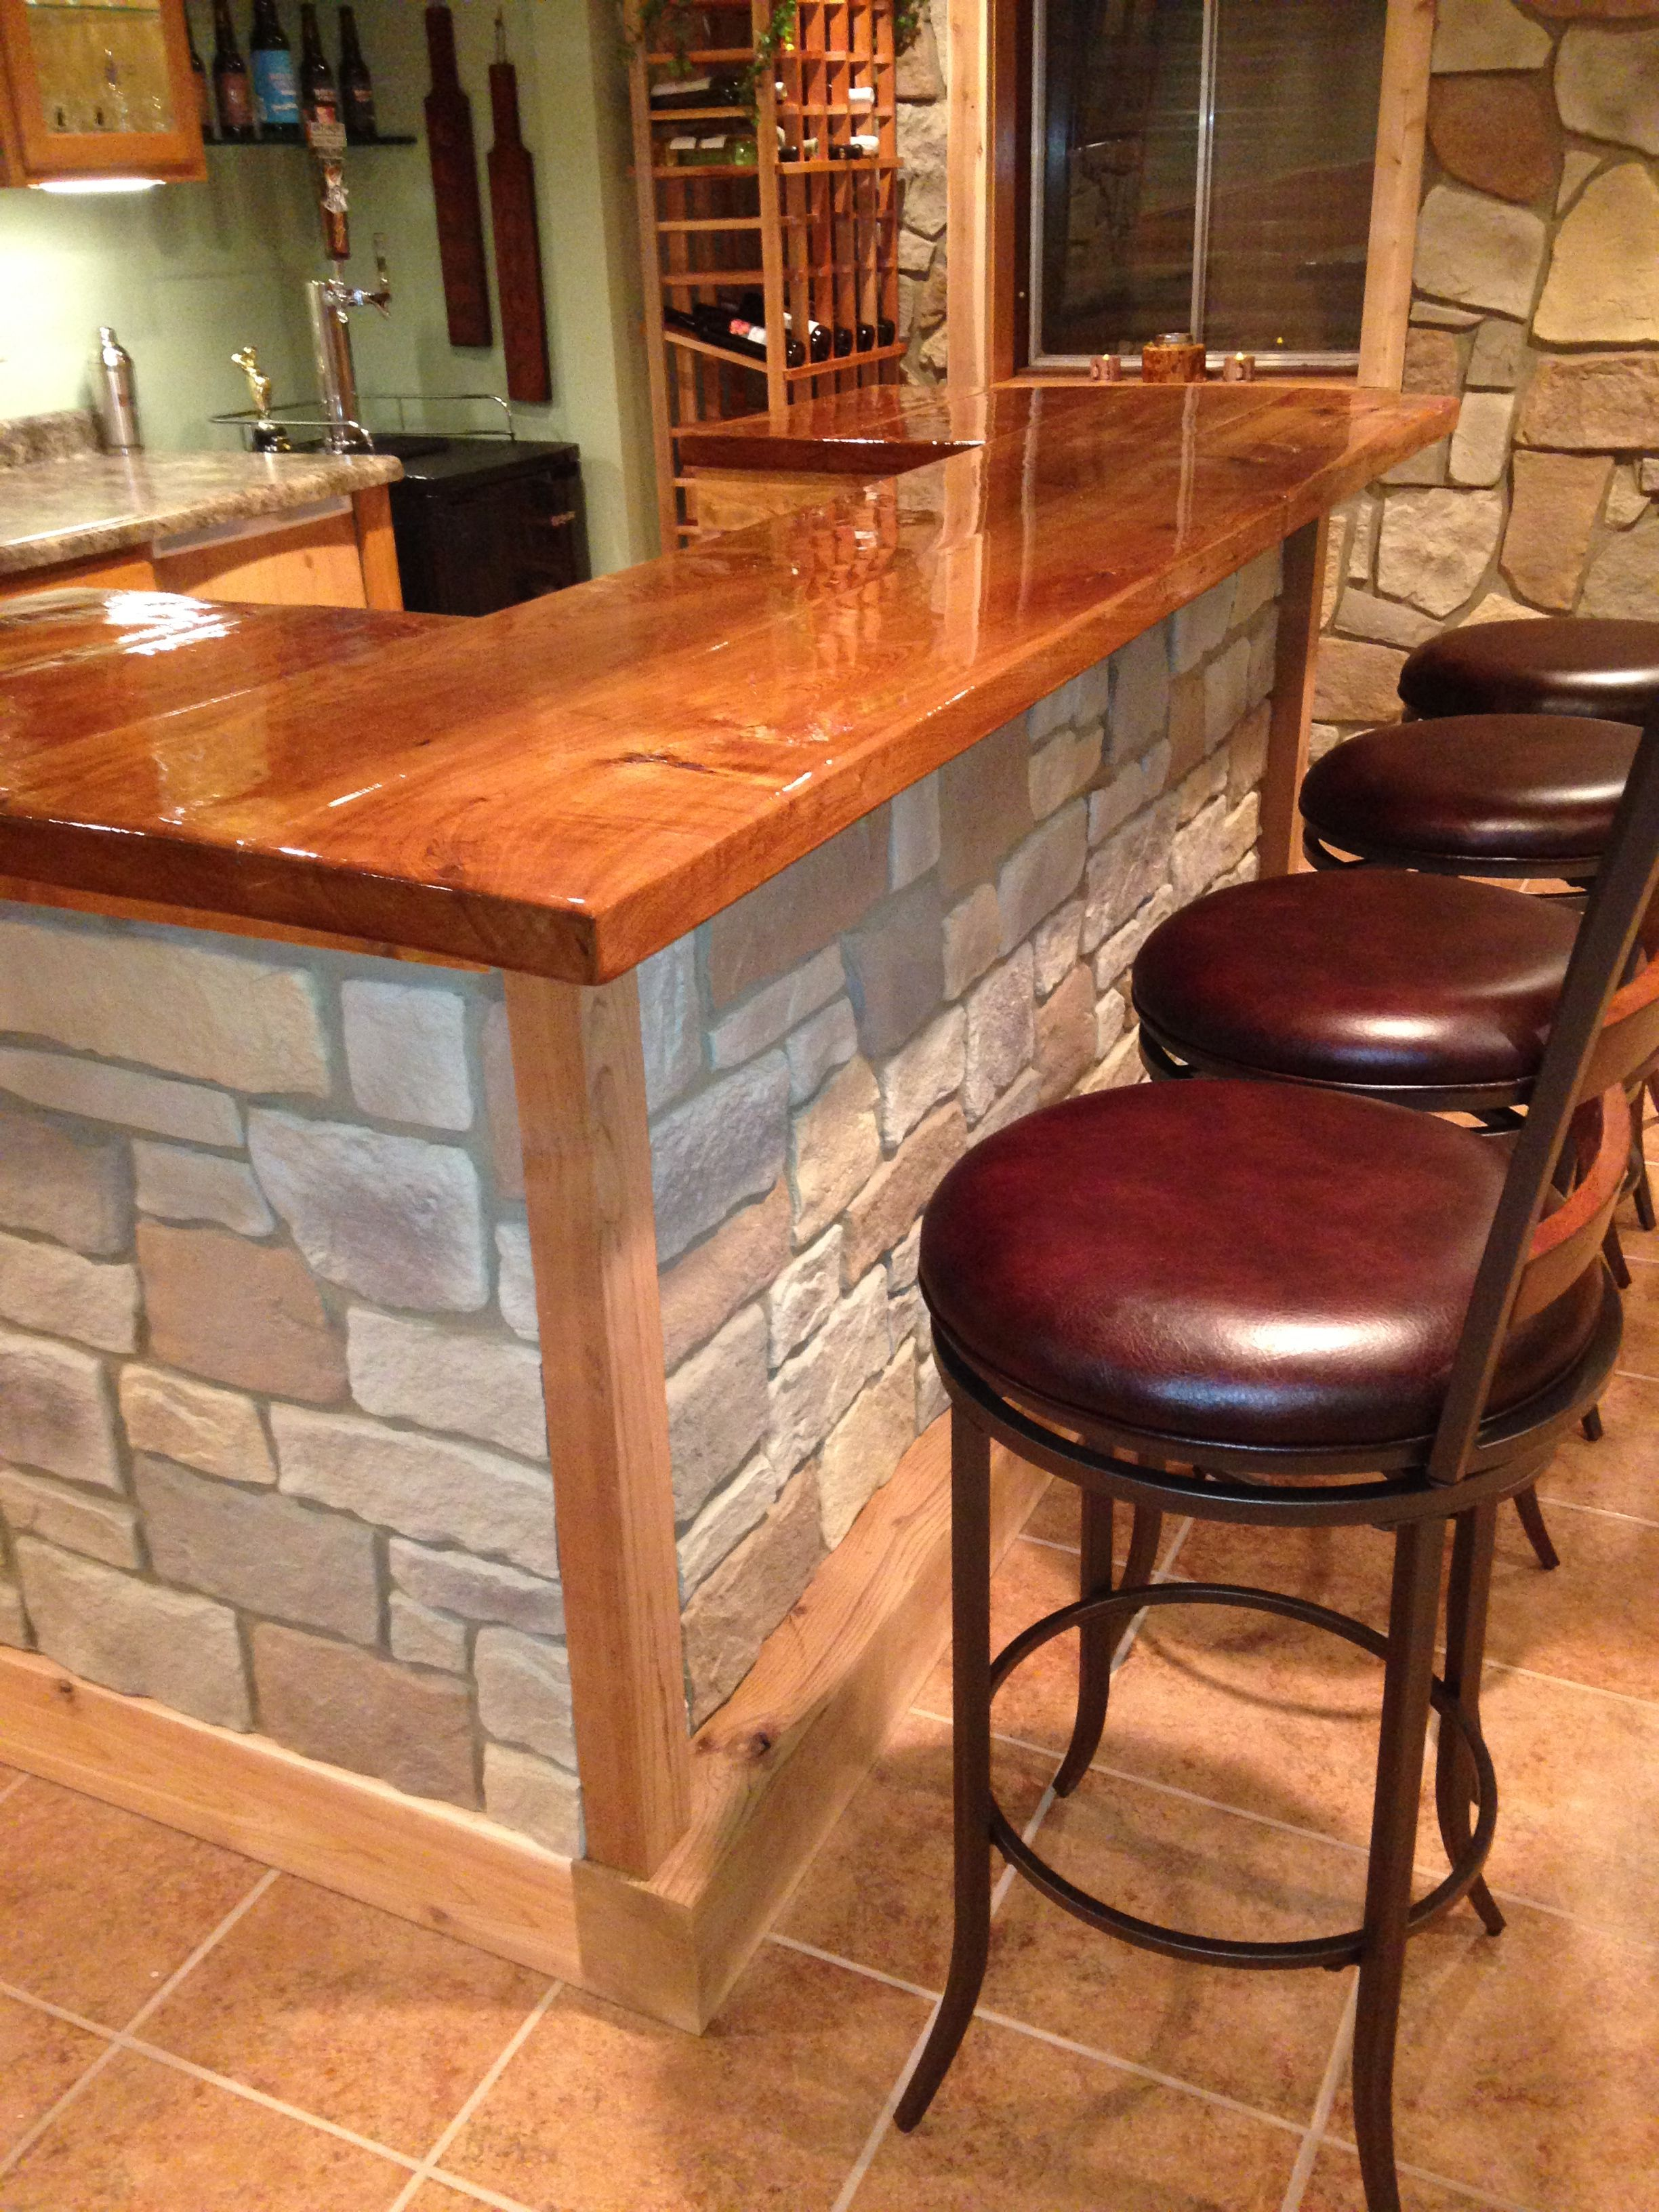 Epoxy resin for bar tops tabletops  countertops commercial grade diy fun basement designs also rh pinterest